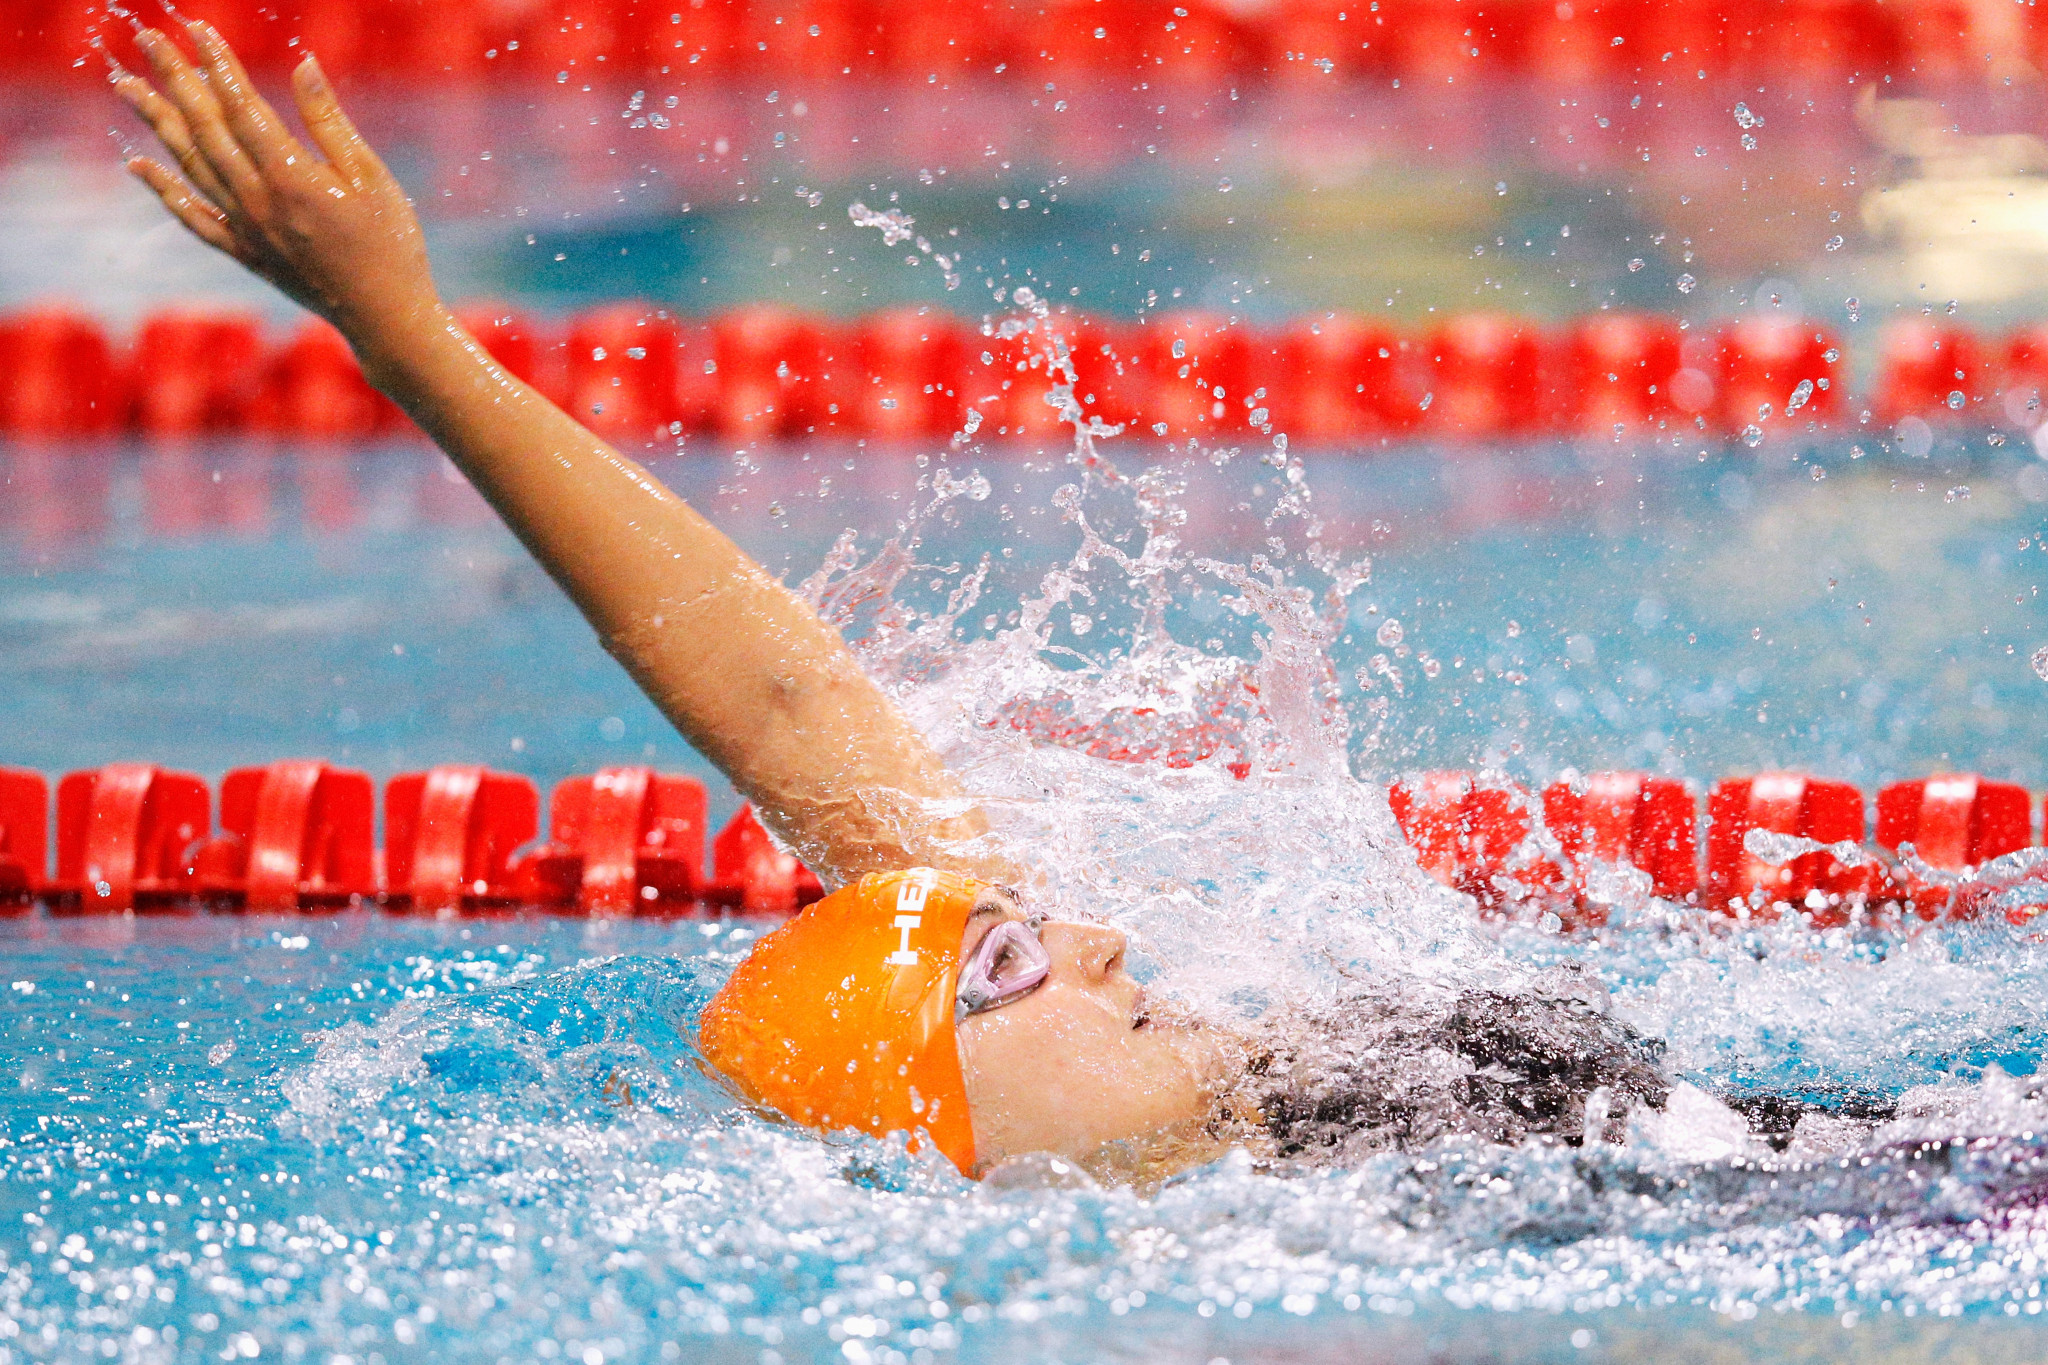 Germany's Elena Krawzow may have broken a world record at the World Para Swimming World Series in Berlin ©Getty Images